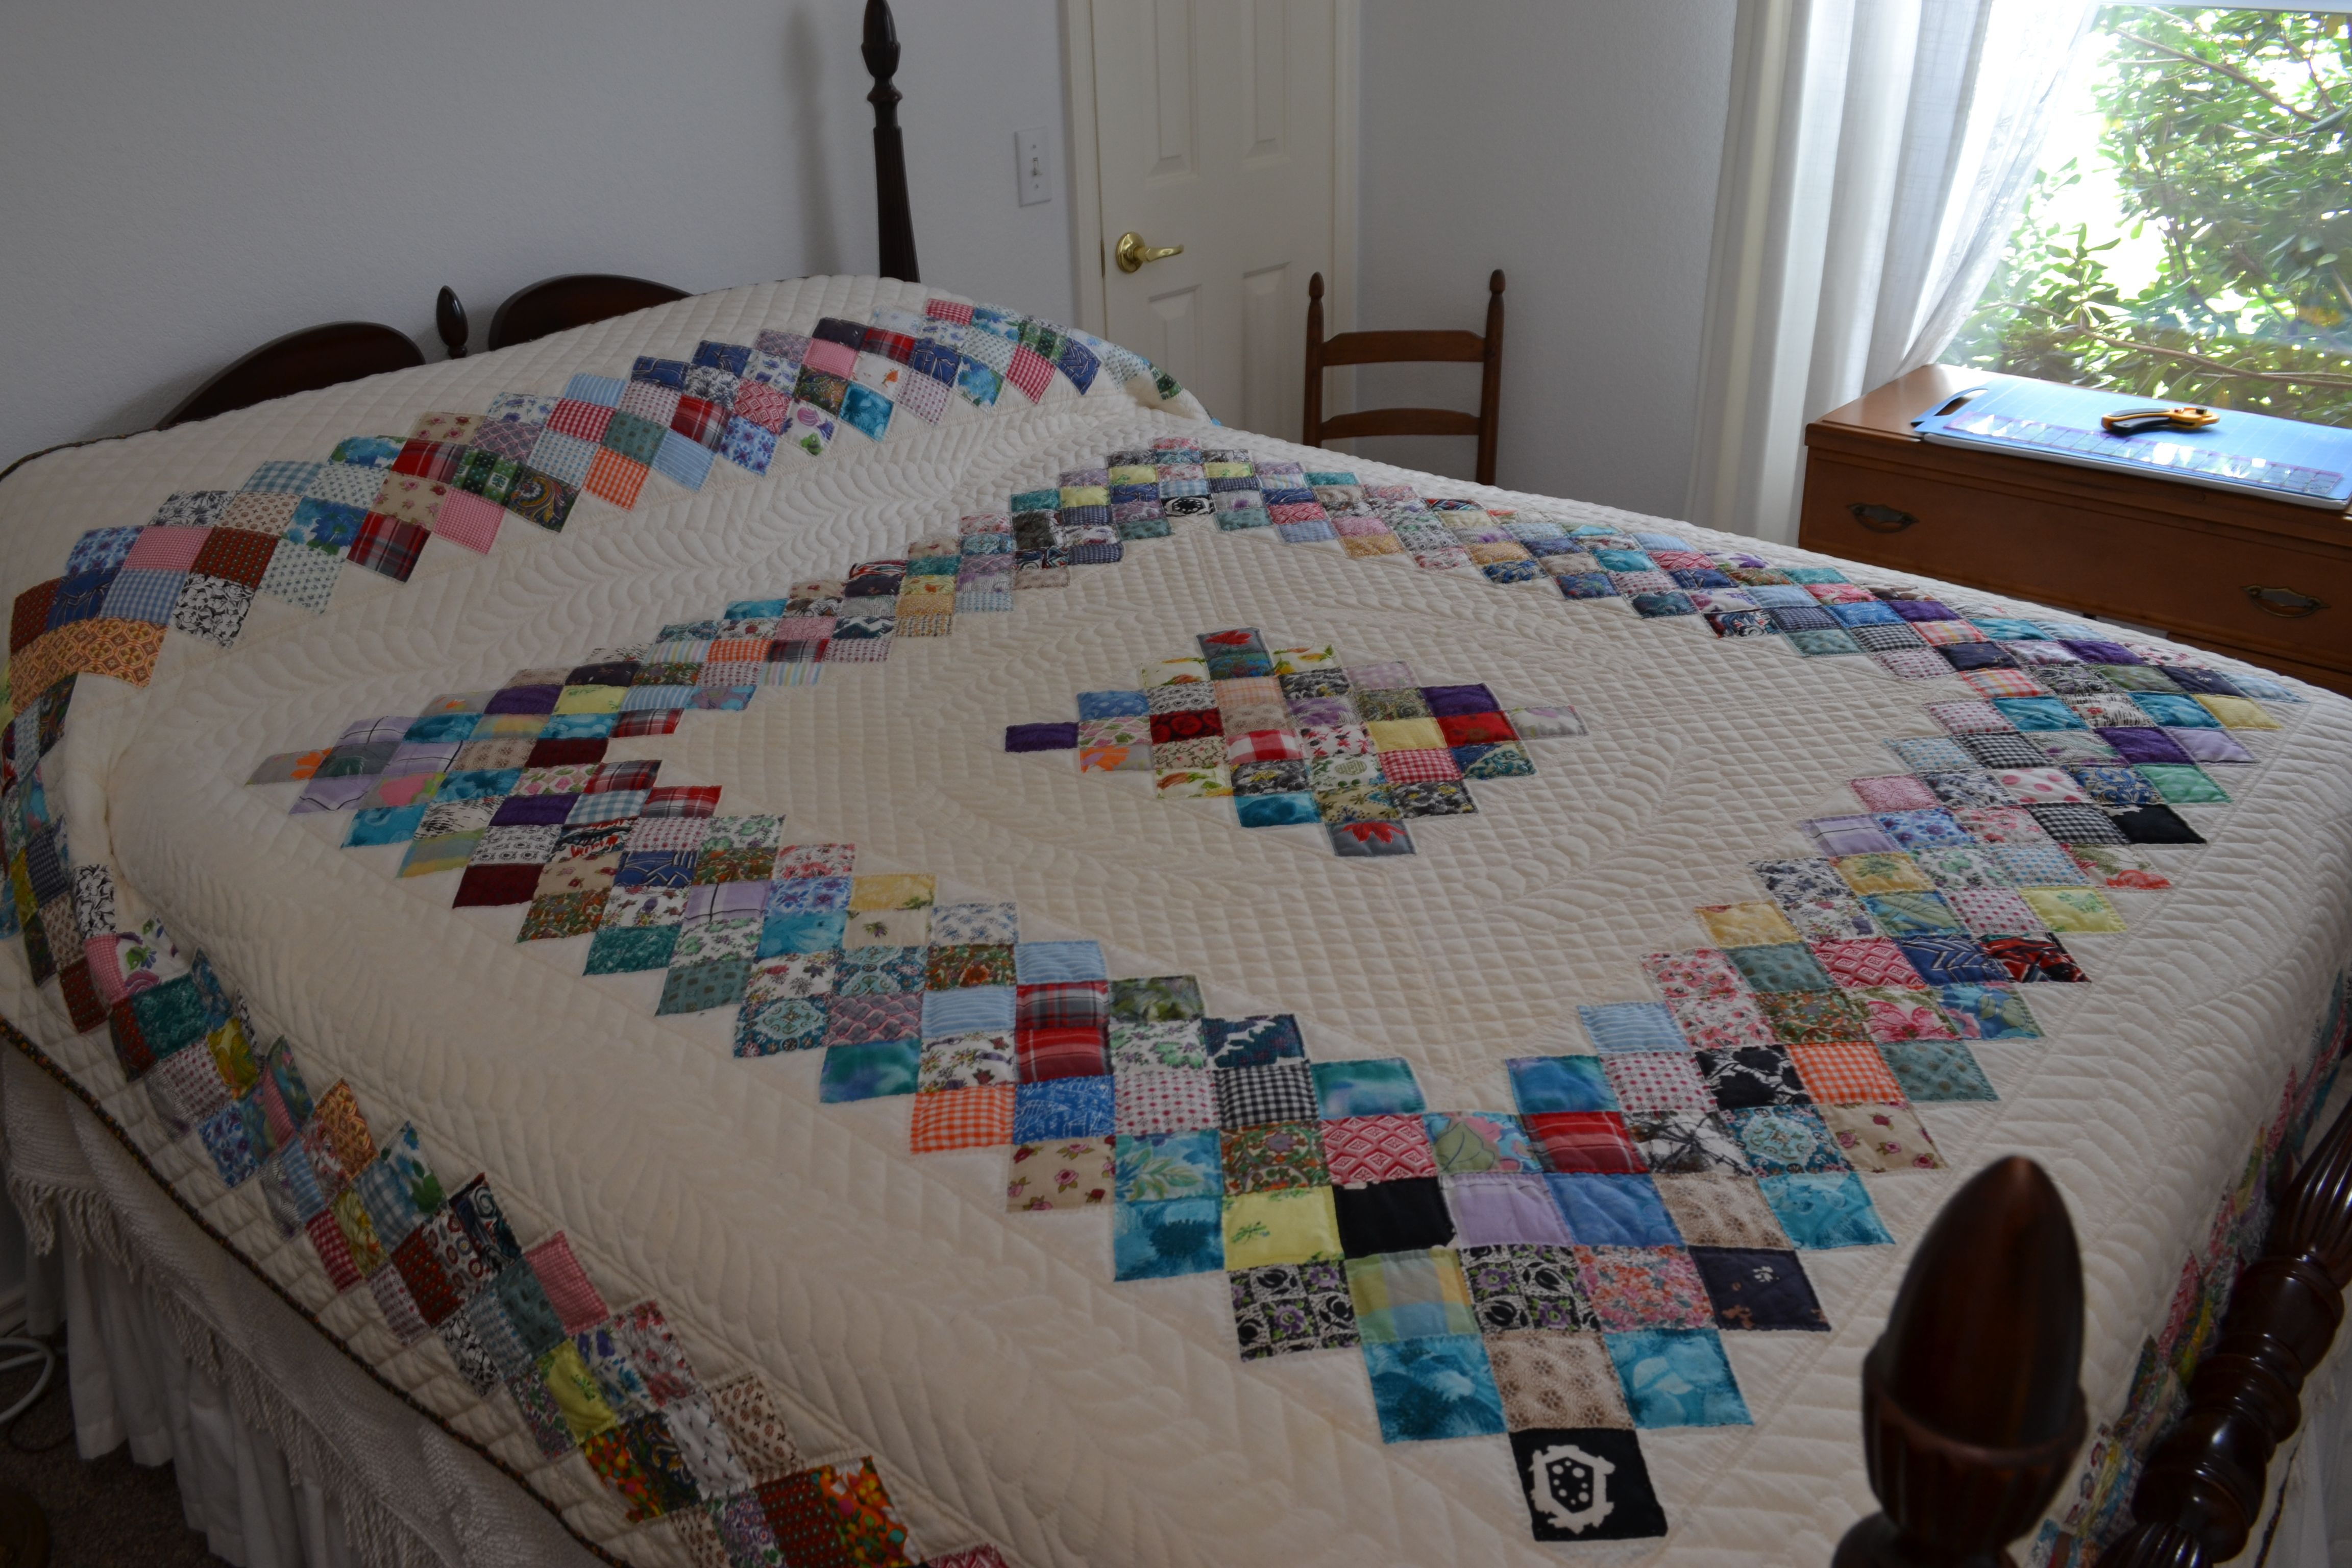 Boston Commons Quilt Google Search Vintage Quilts Quilts Quilt Making